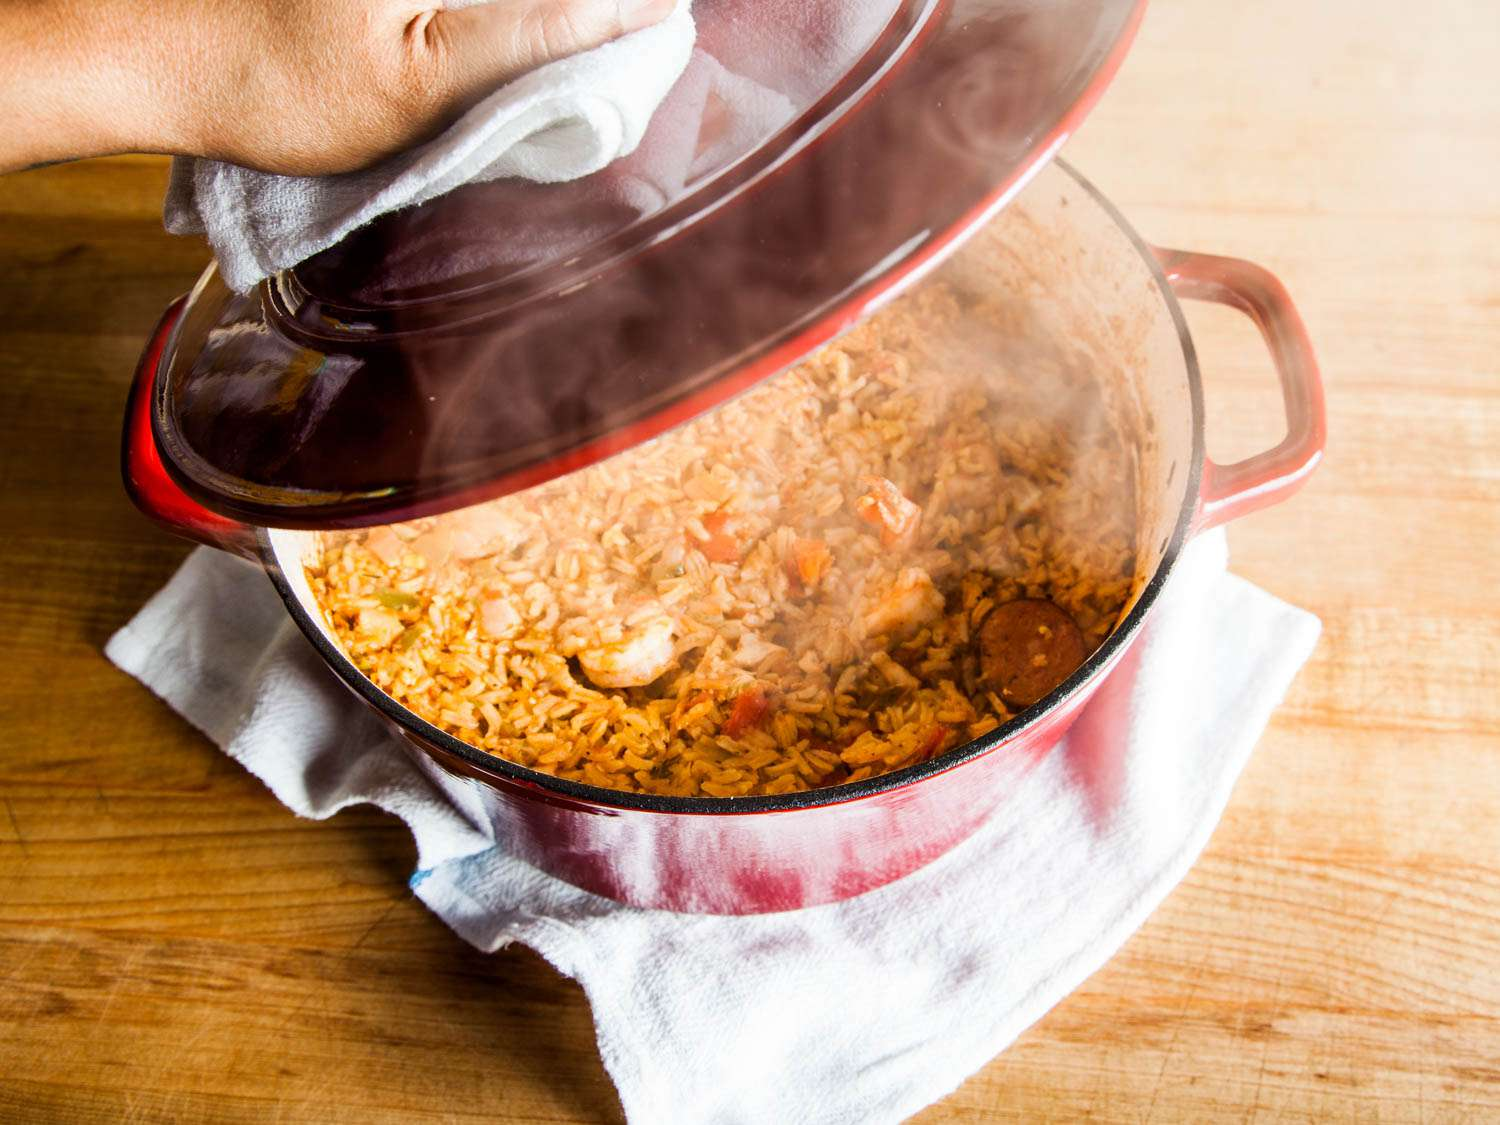 Lifting the lid of a Dutch oven containing steaming jambalaya